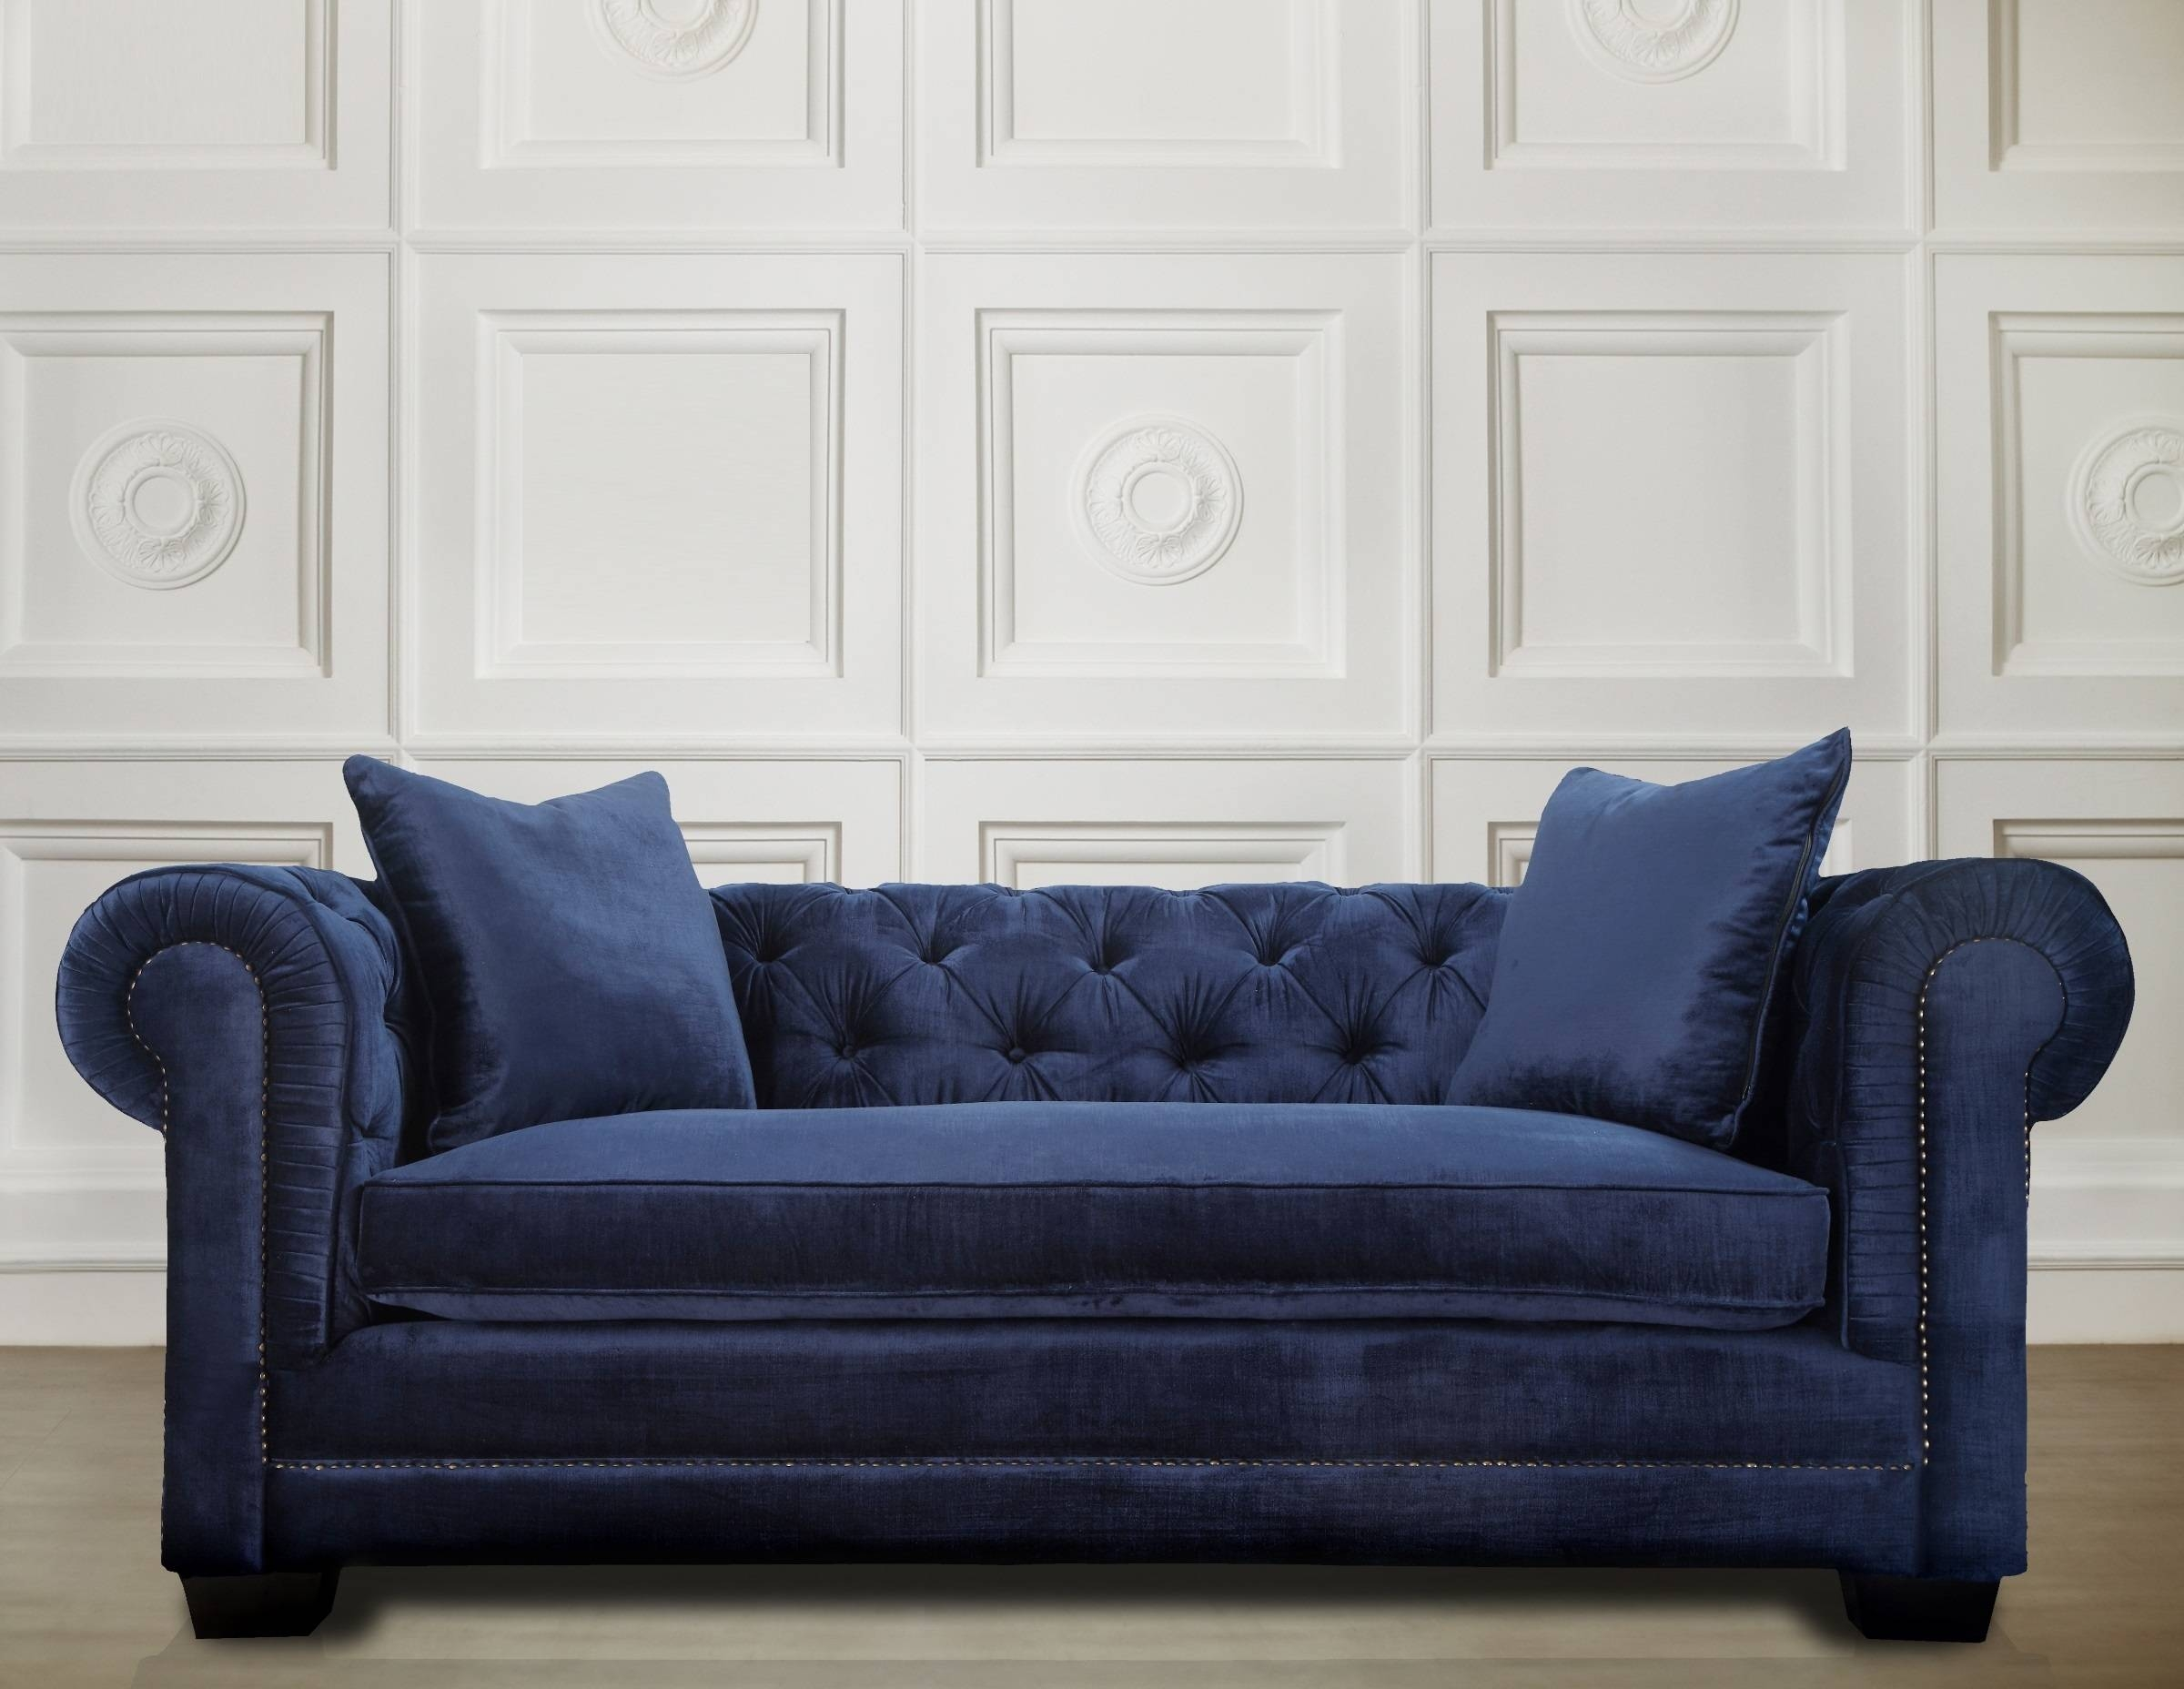 Storage Full Size Of Sofas Center 37 Staggering Chesterfield inside Tufted Leather Chesterfield Sofas (Image 27 of 30)